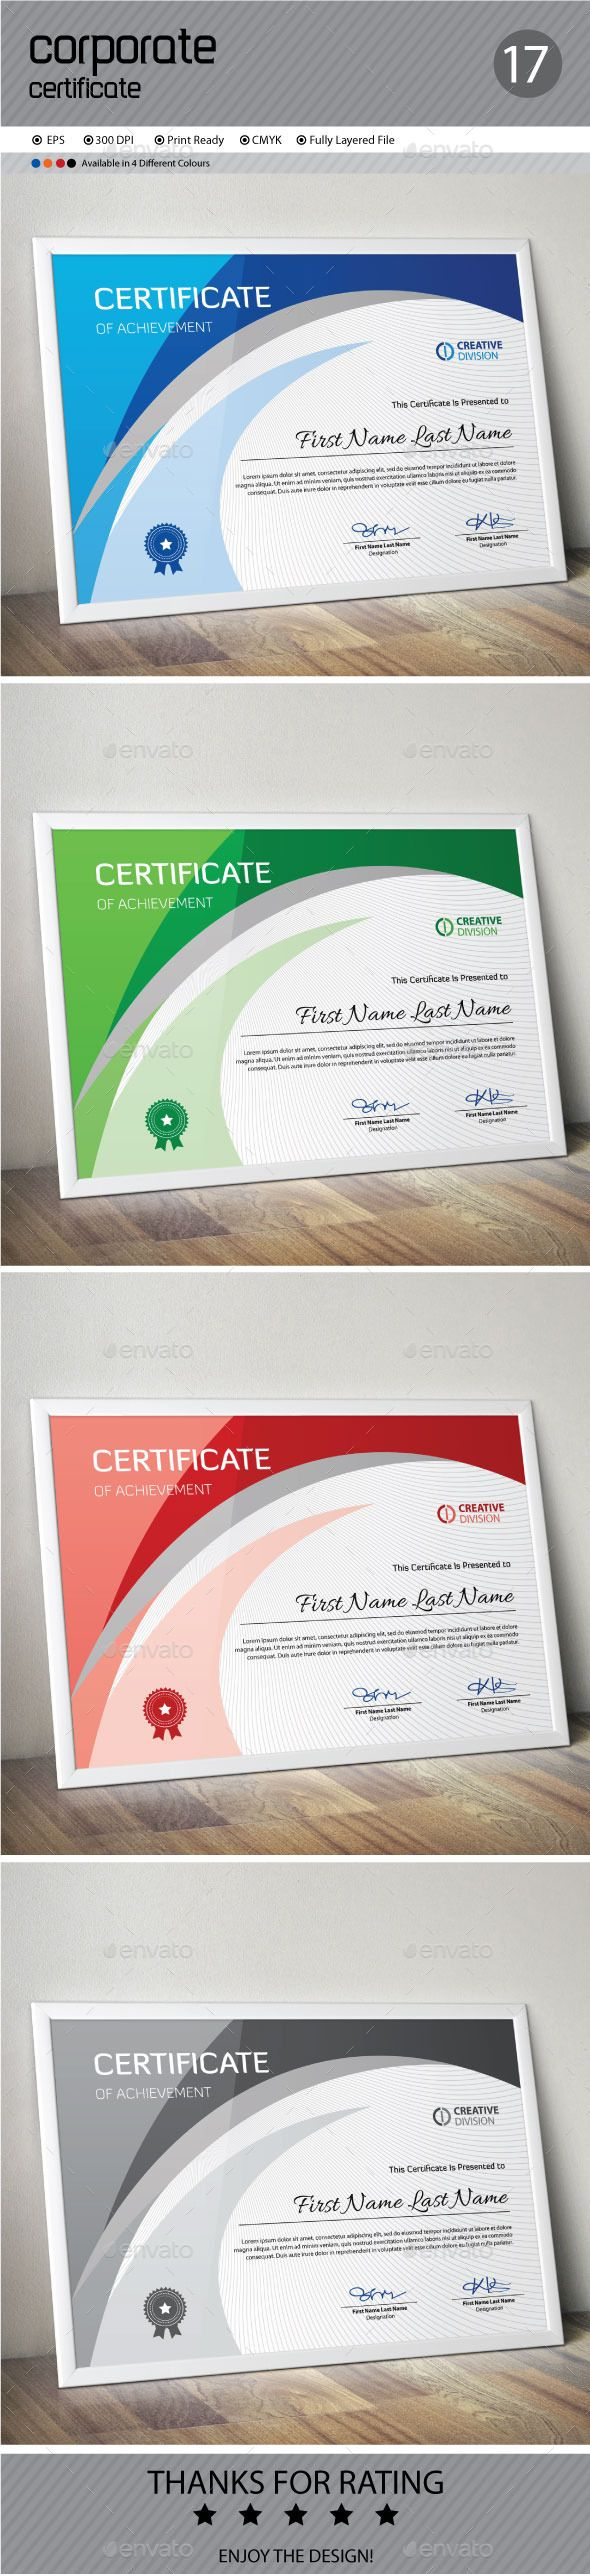 Certificate Template Vector EPS. Download here: http://graphicriver.net/item/certificate/12598914?ref=ksioks